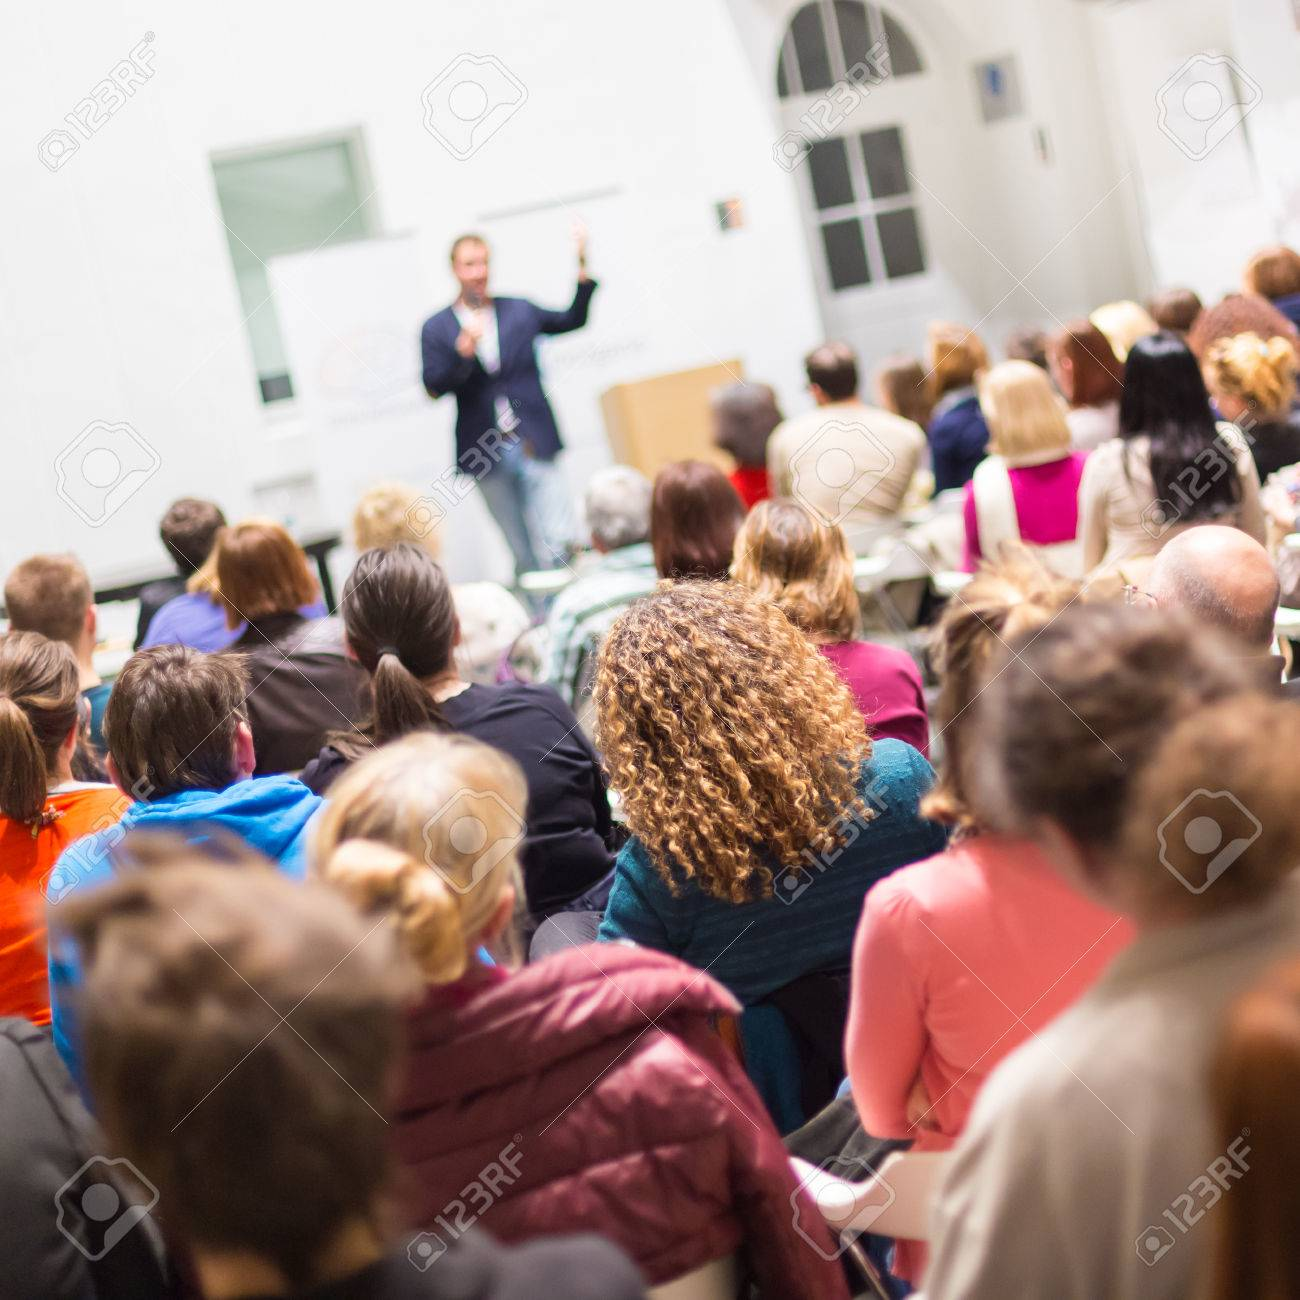 Speaker Giving a Talk at Business Meeting. Audience in the conference hall. Business and Entrepreneurship. Copy space on white board. - 39790967